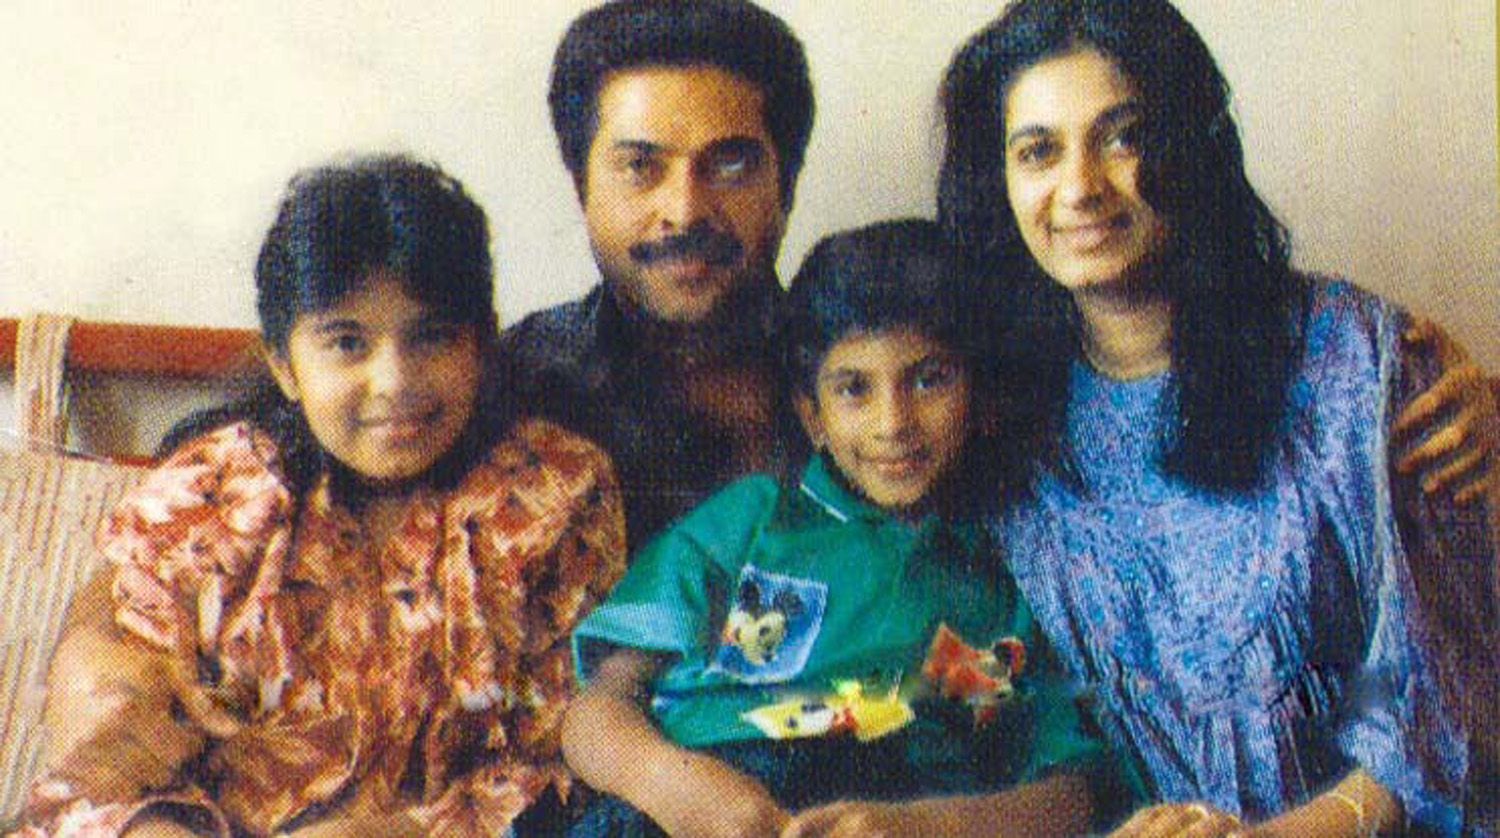 mammootty family photoswife daughter son onlookersmedia